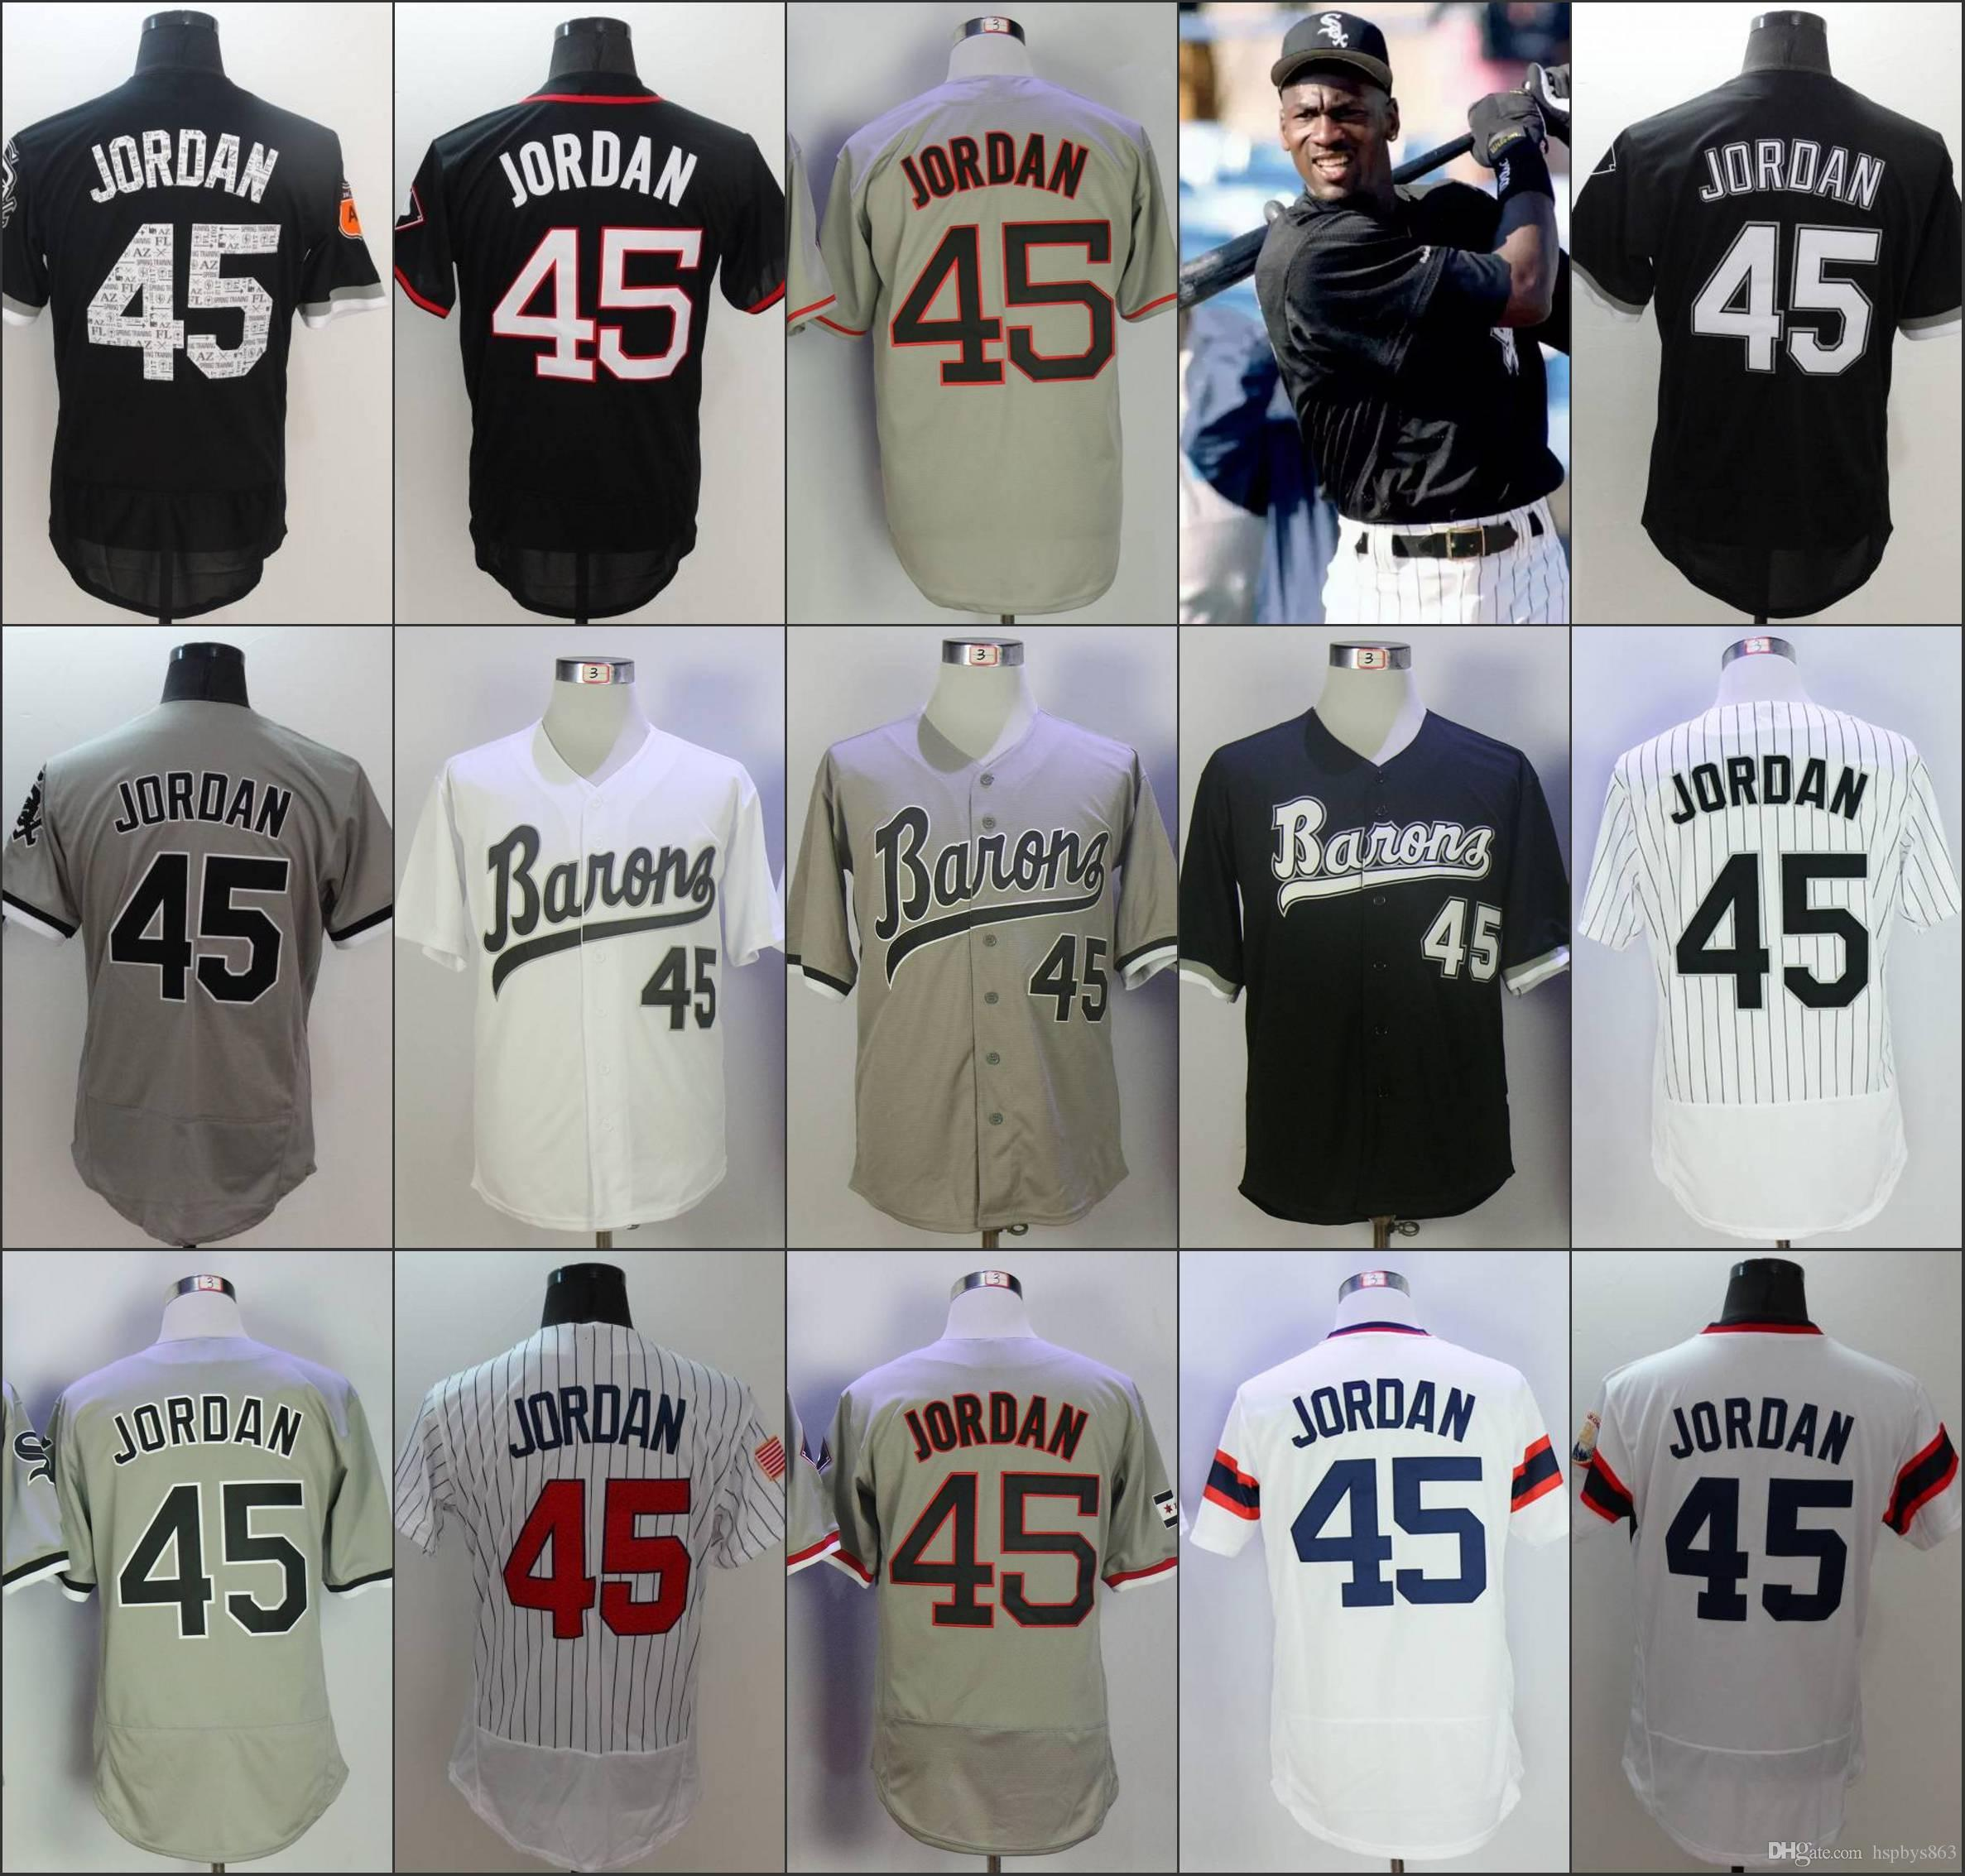 2018 Cheap Men'S Chicago #45 Jordan Baseball Jerseys White Army Green Black  Grey Cool Base Flex Base Throwback Jersey From Hspbys863, $17.92 | Dhgate .Com